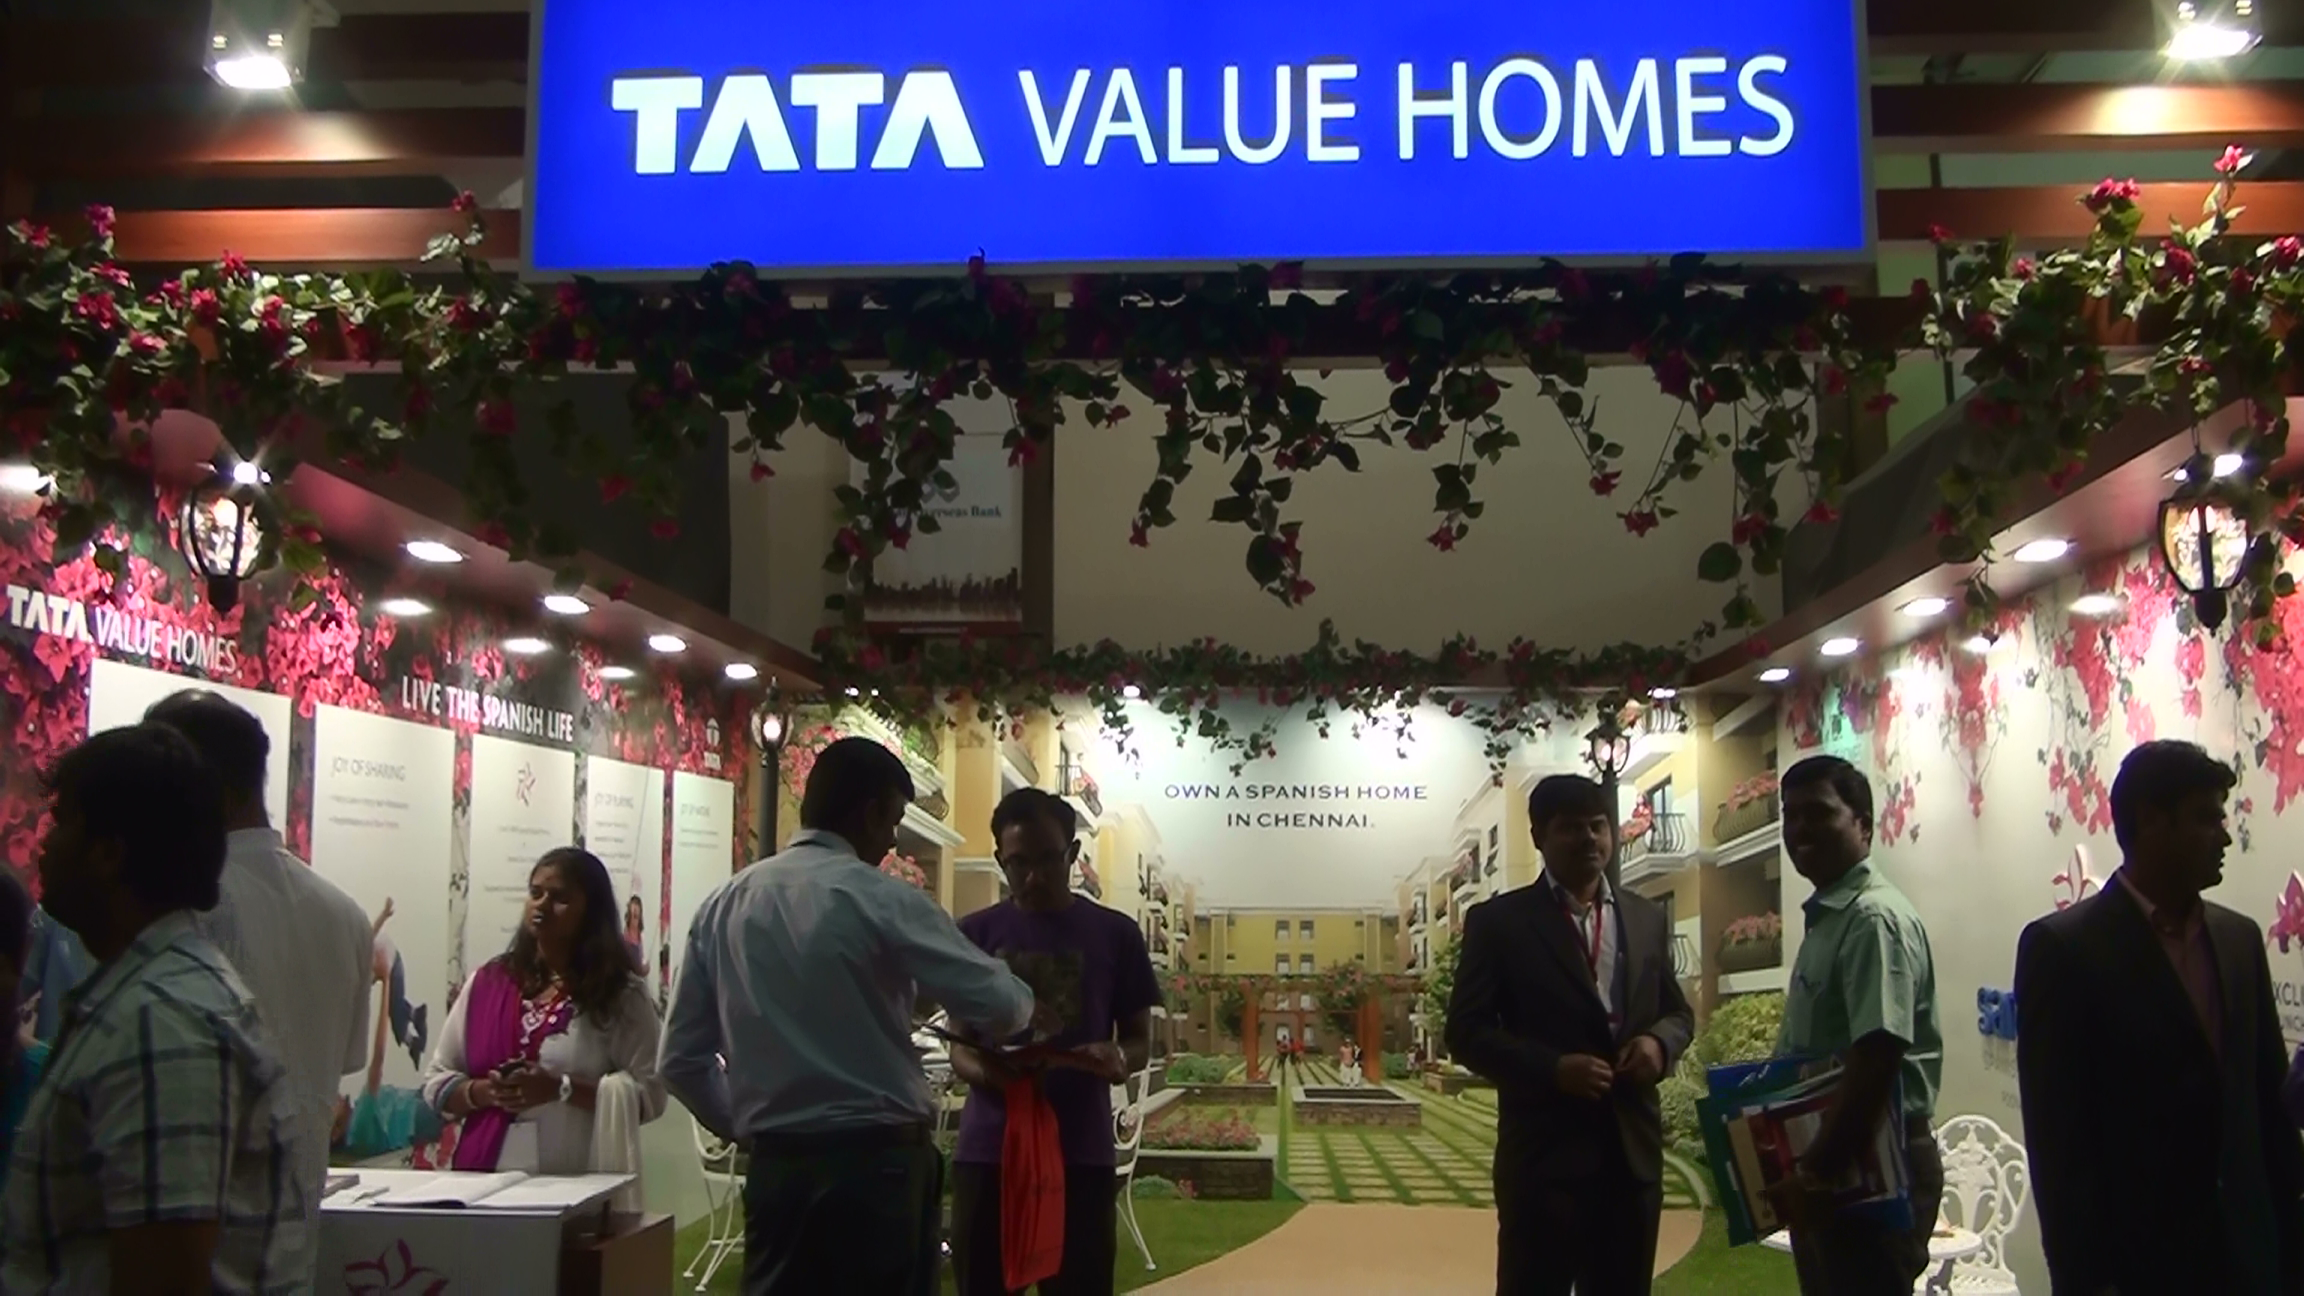 Joint Venture between Tata Value Homes and Housing.com